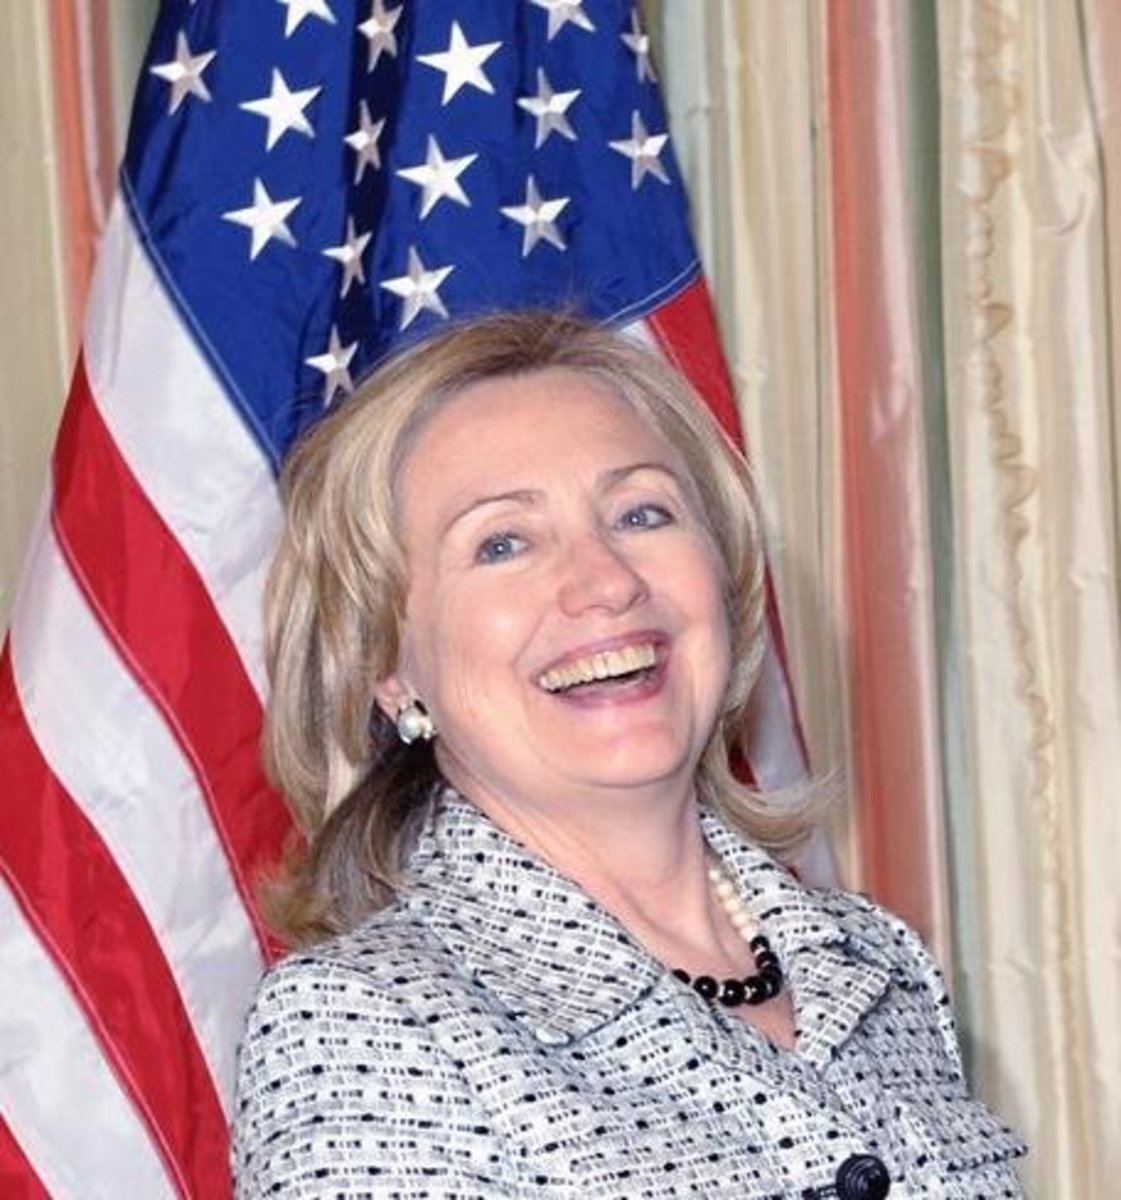 Hillary used a private account to hide emails from the American people.